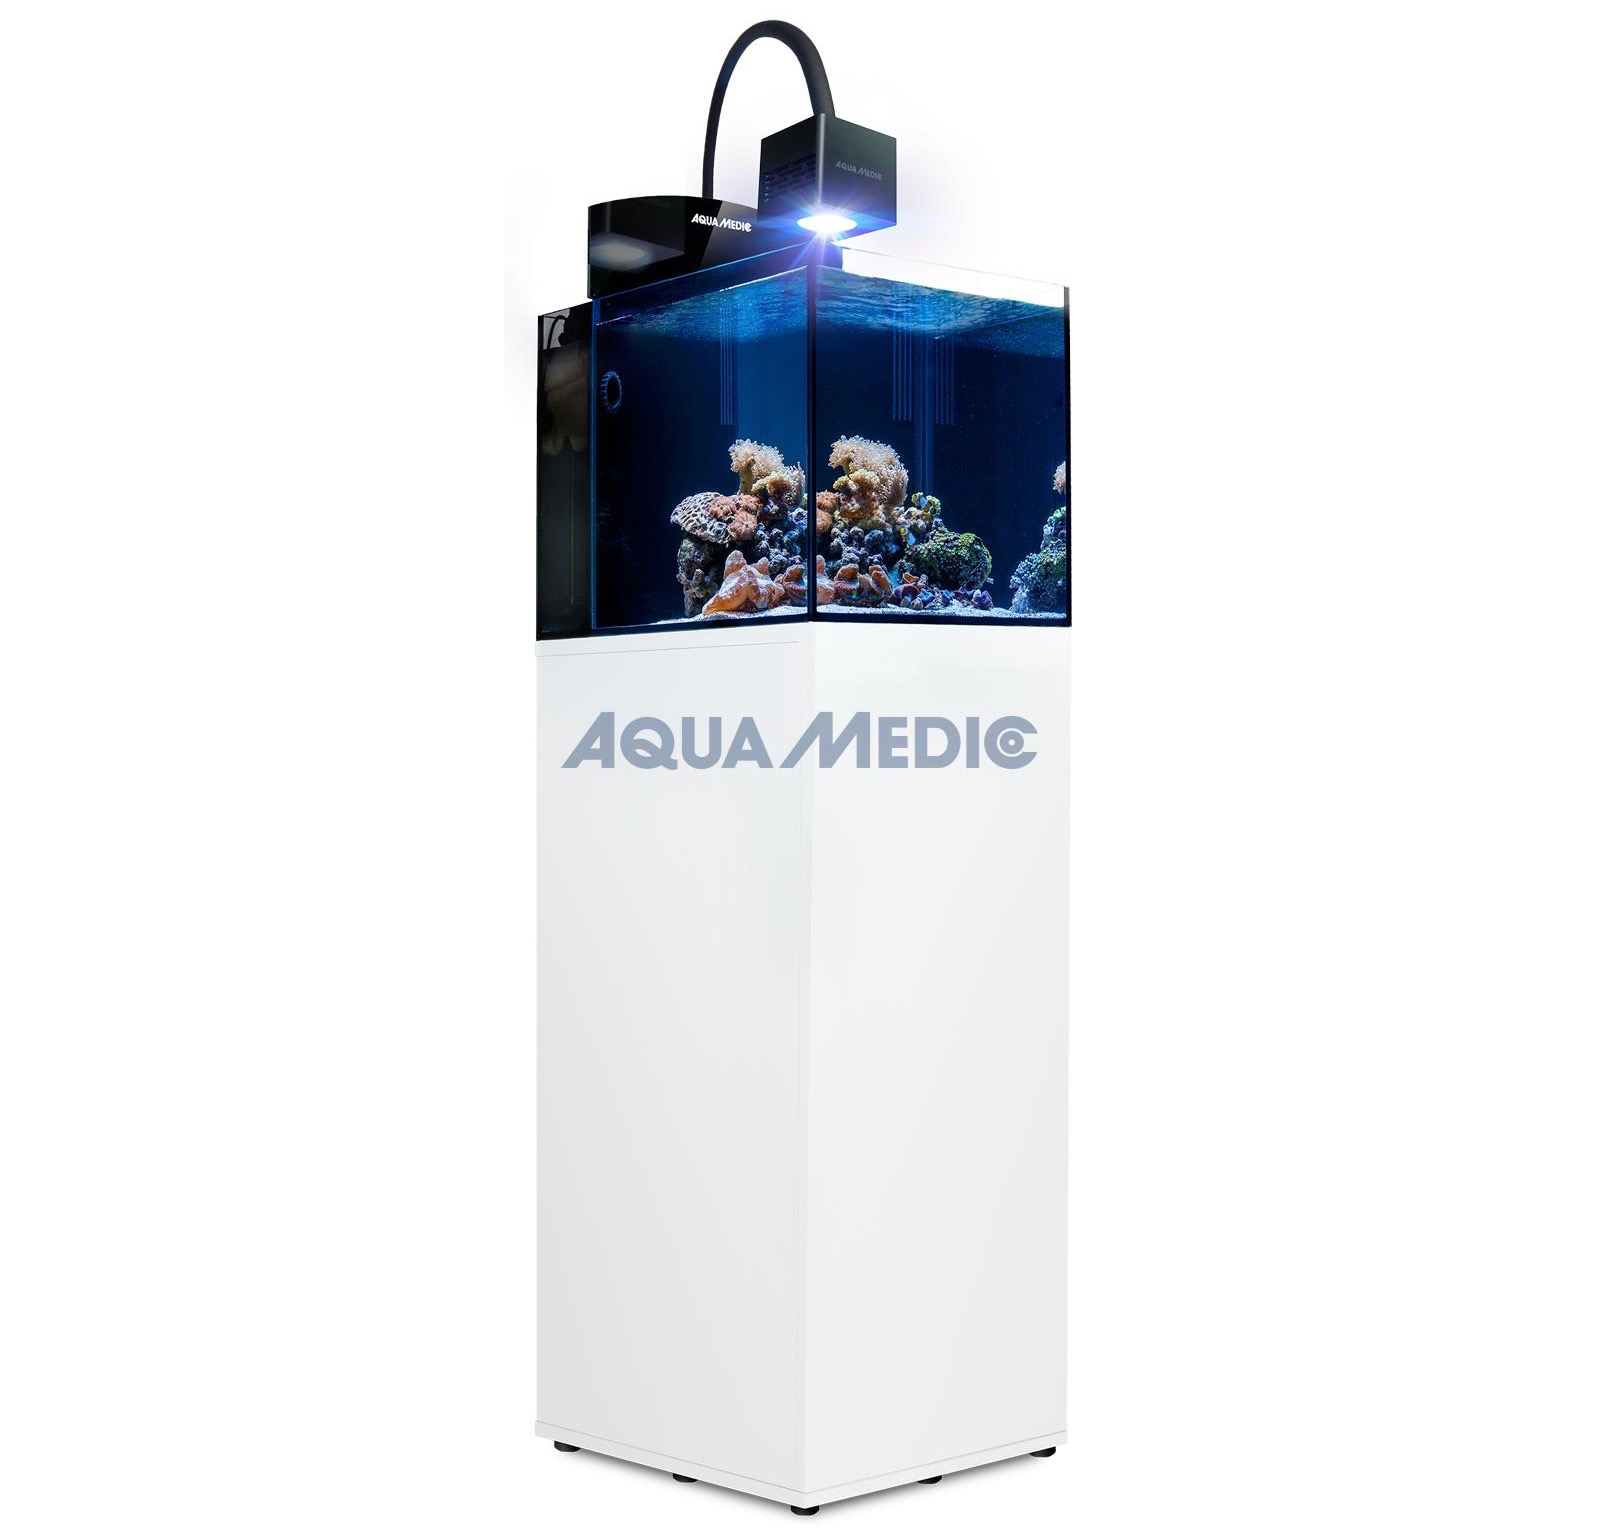 aquamedic blenny qube 2